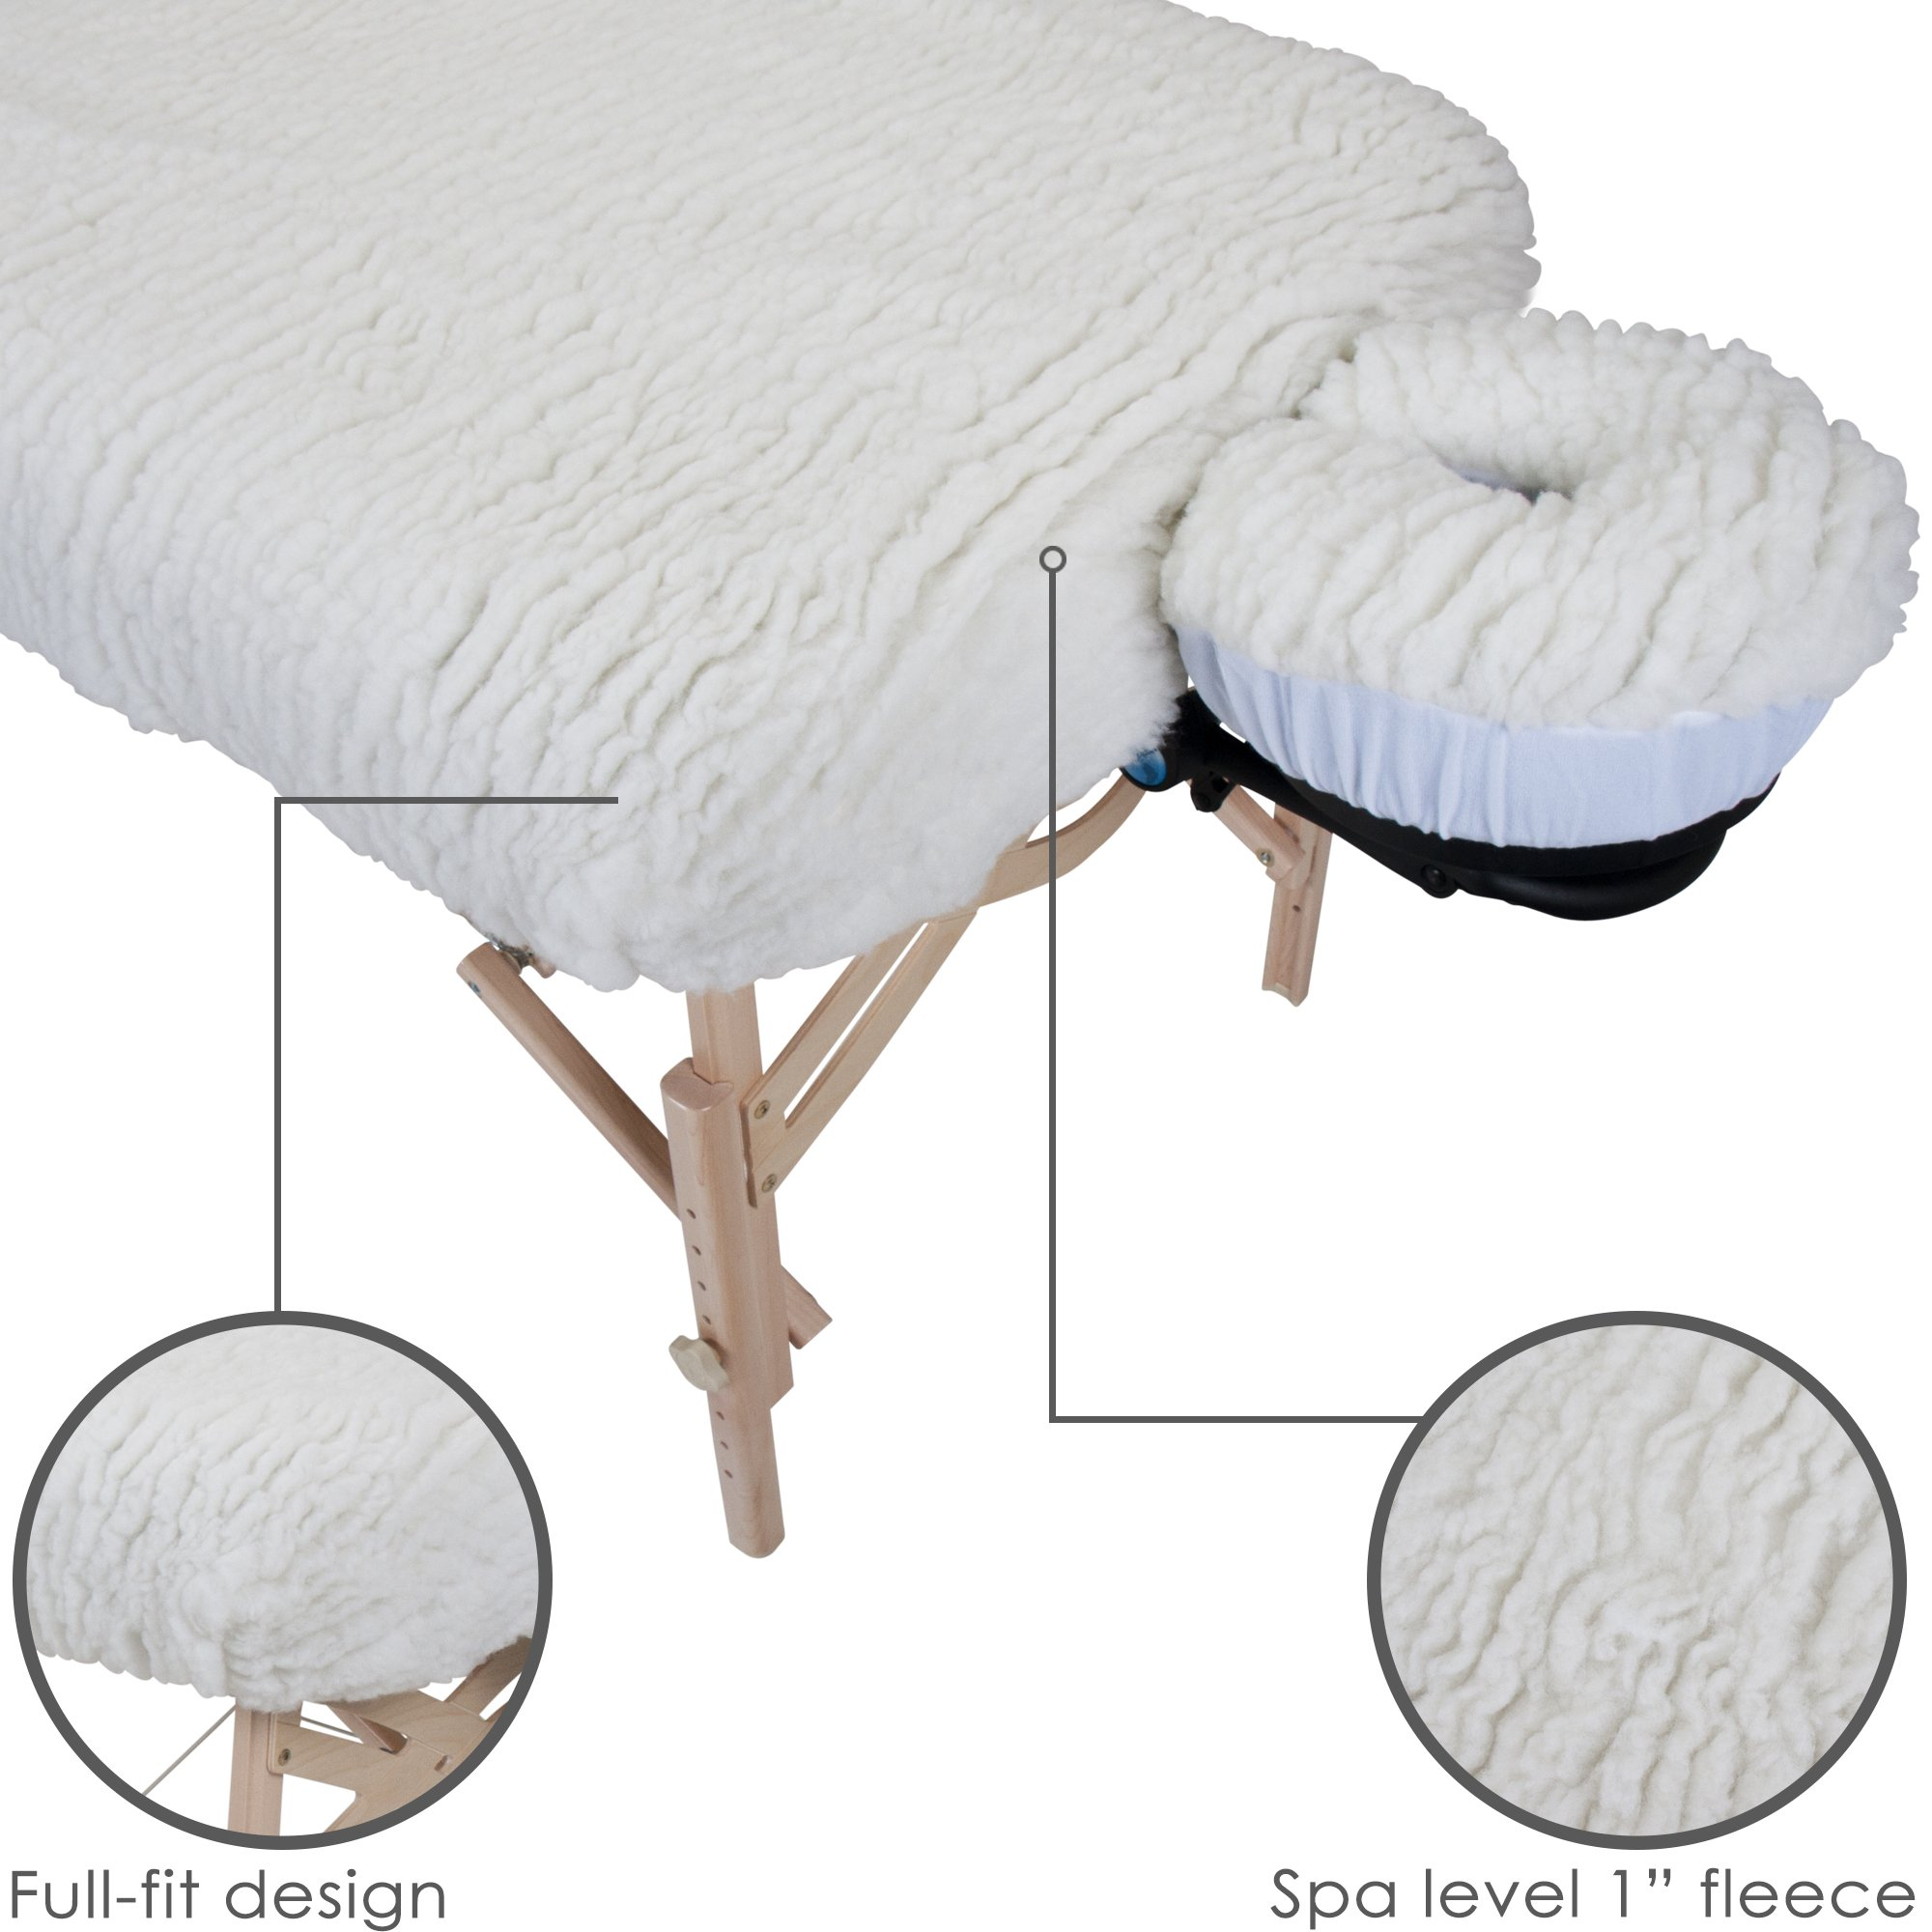 EARTHLITE Massage Table Fleece Pads - Different Styles & Sets - Cover Your Massage Table & Face Cradles in Cozy, Warm Fleece by EARTHLITE